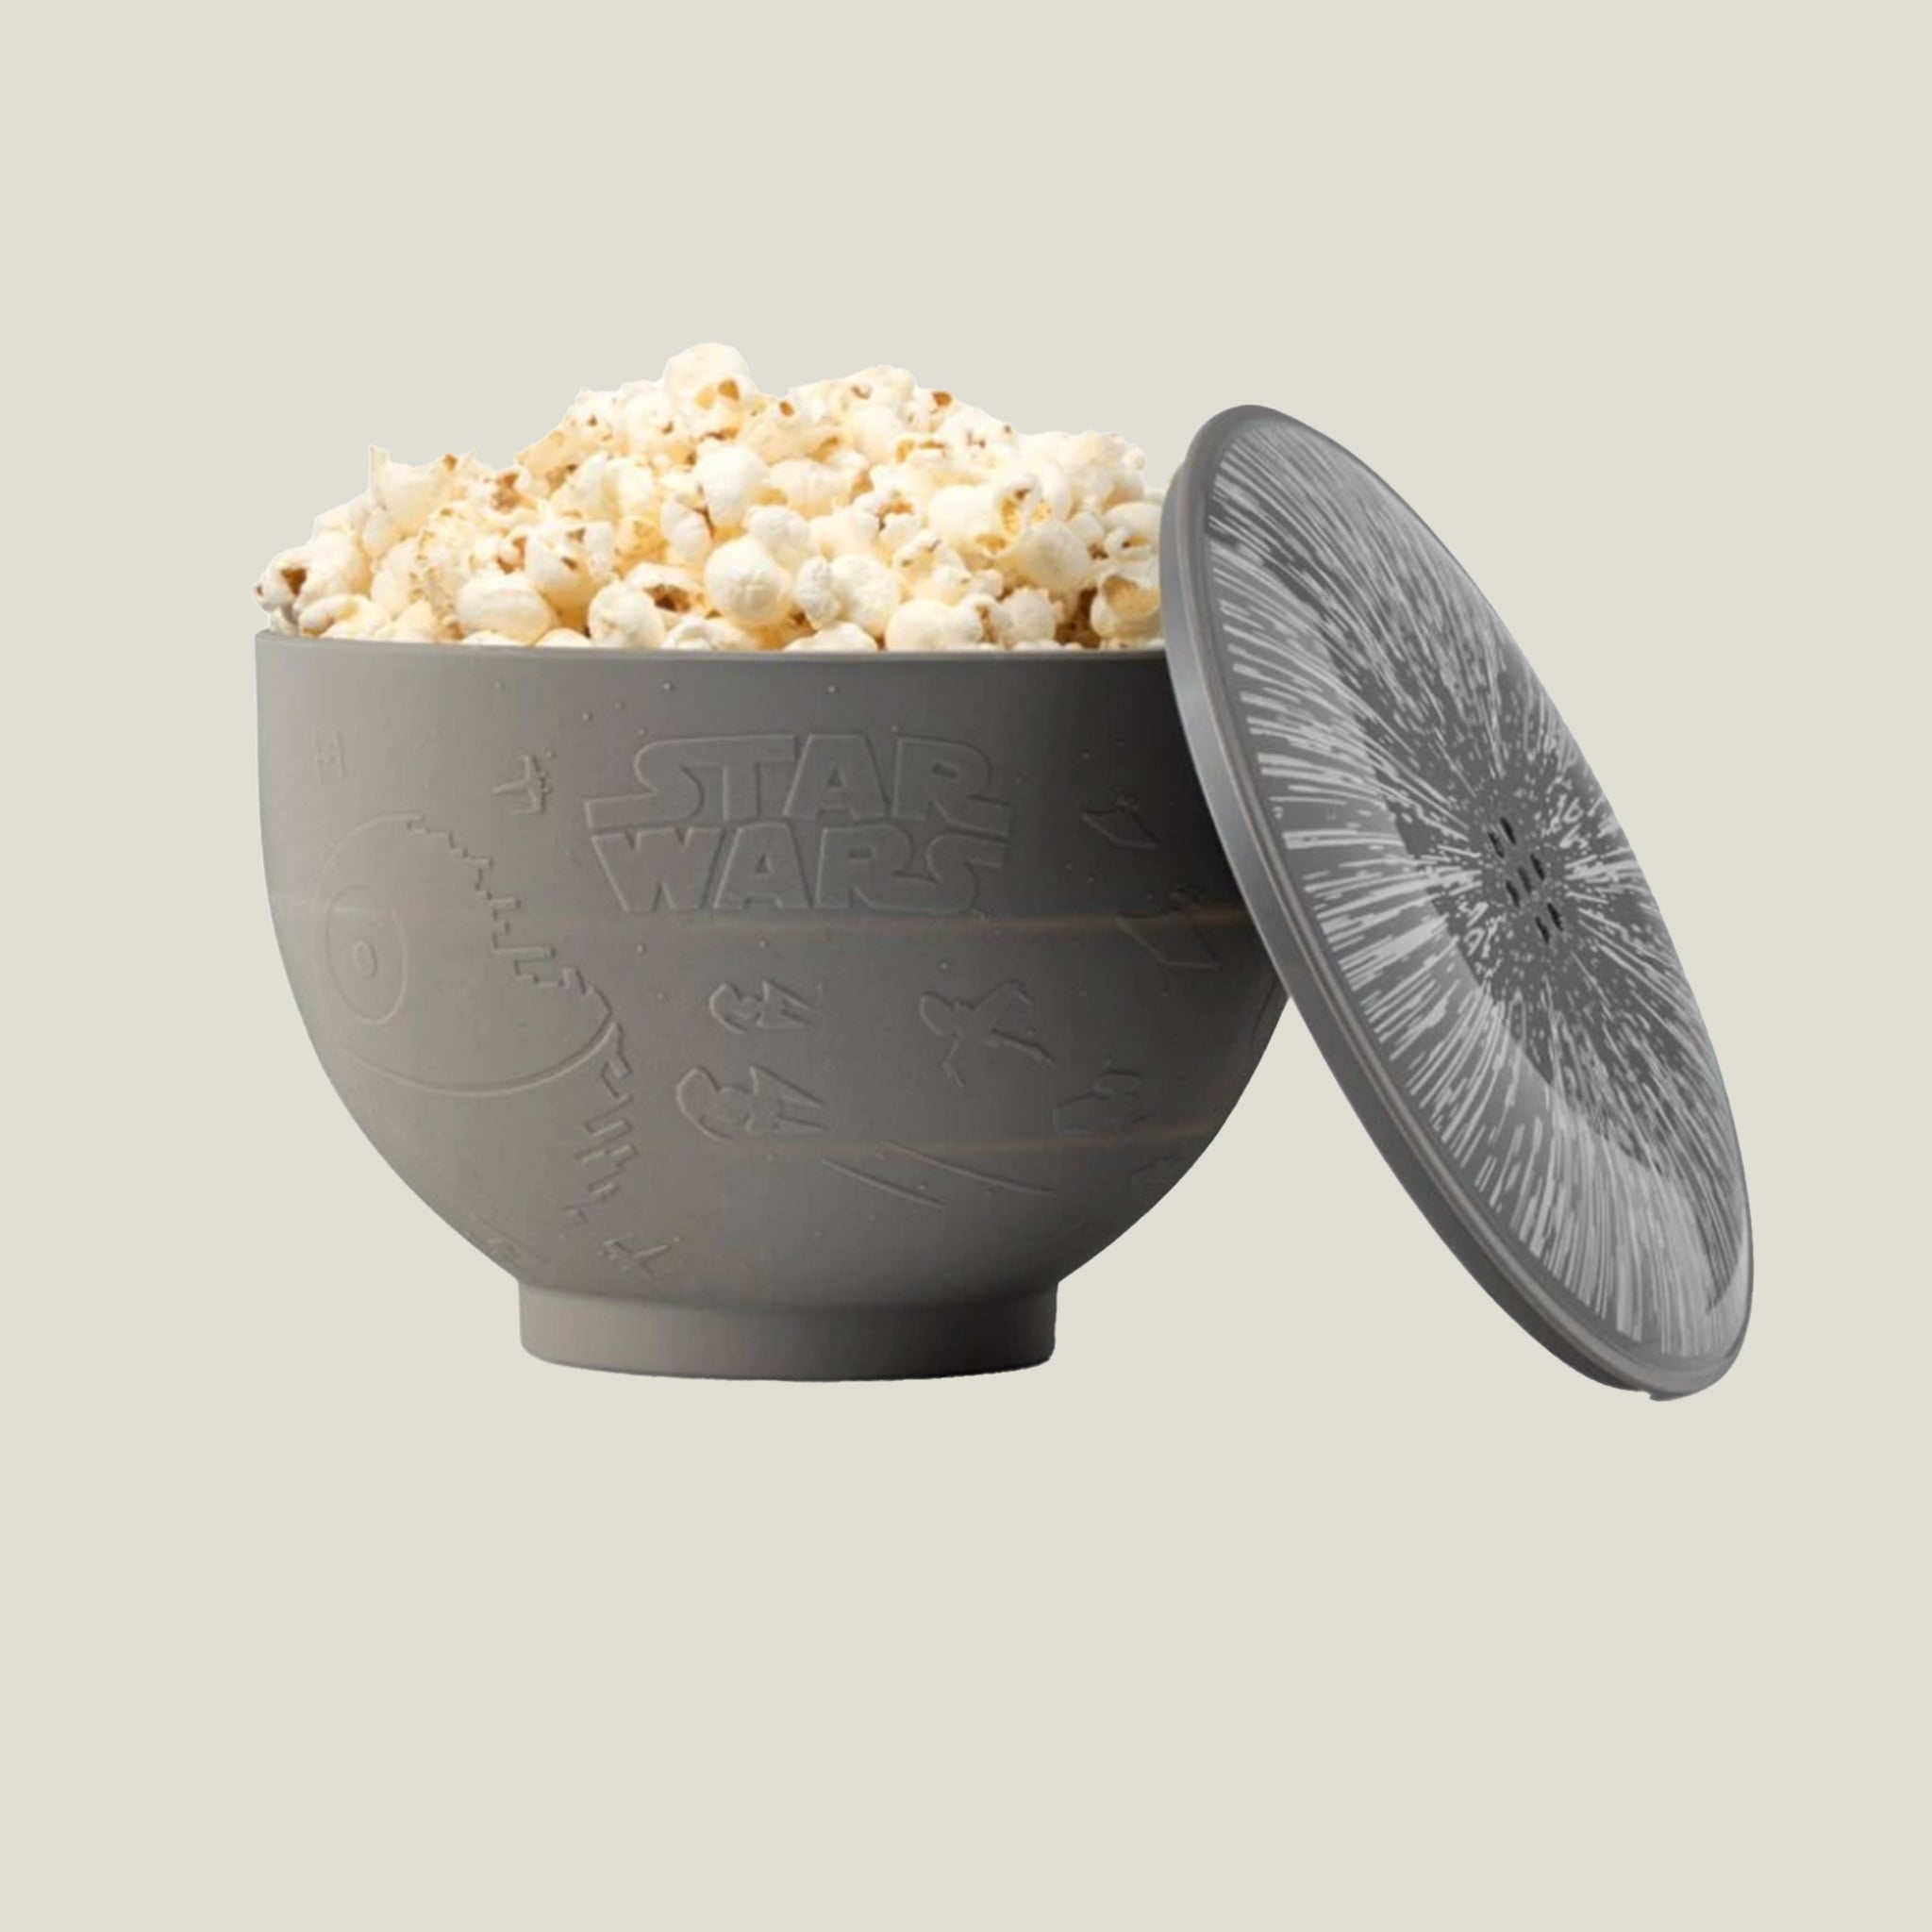 Star Wars Popcorn Popper - Blackbird General Store